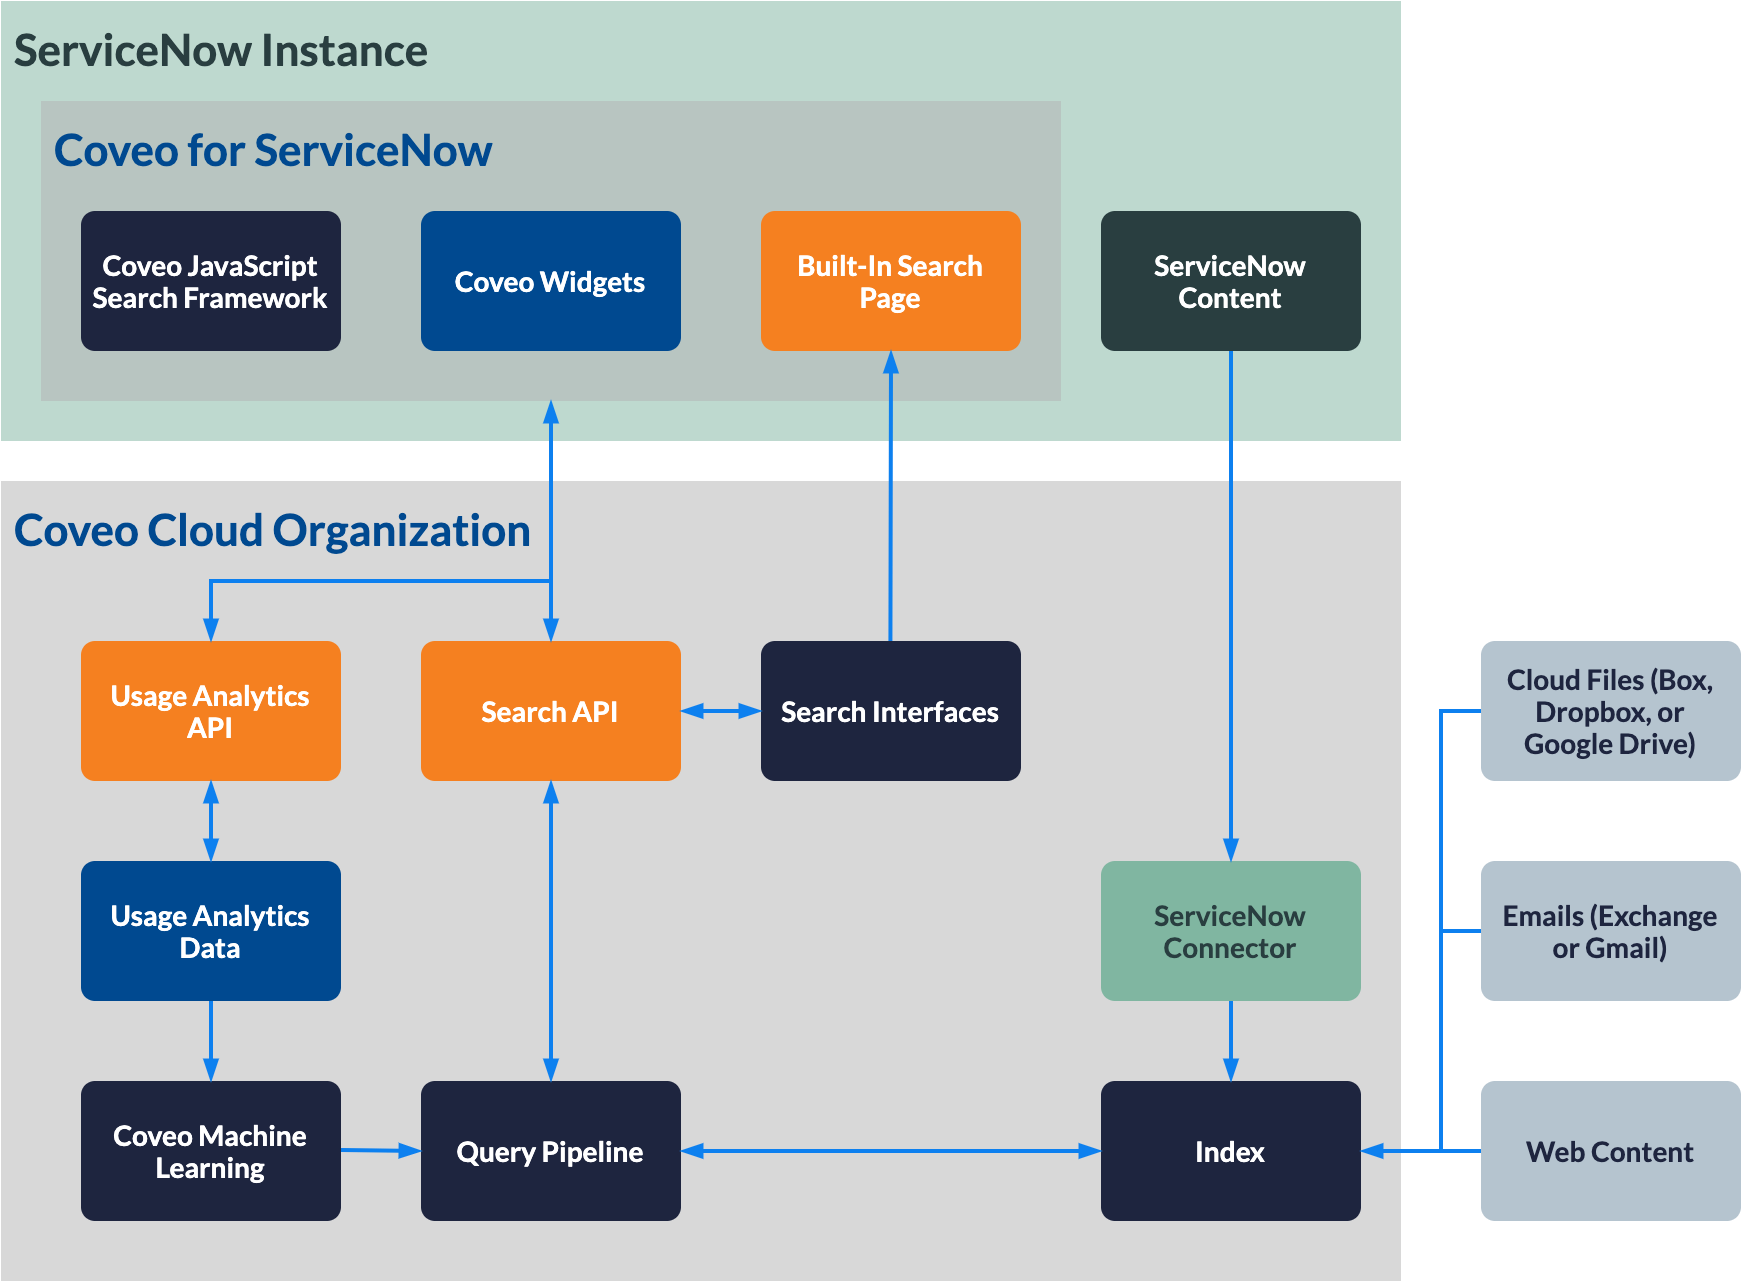 Coveo for ServiceNow architecture diagram